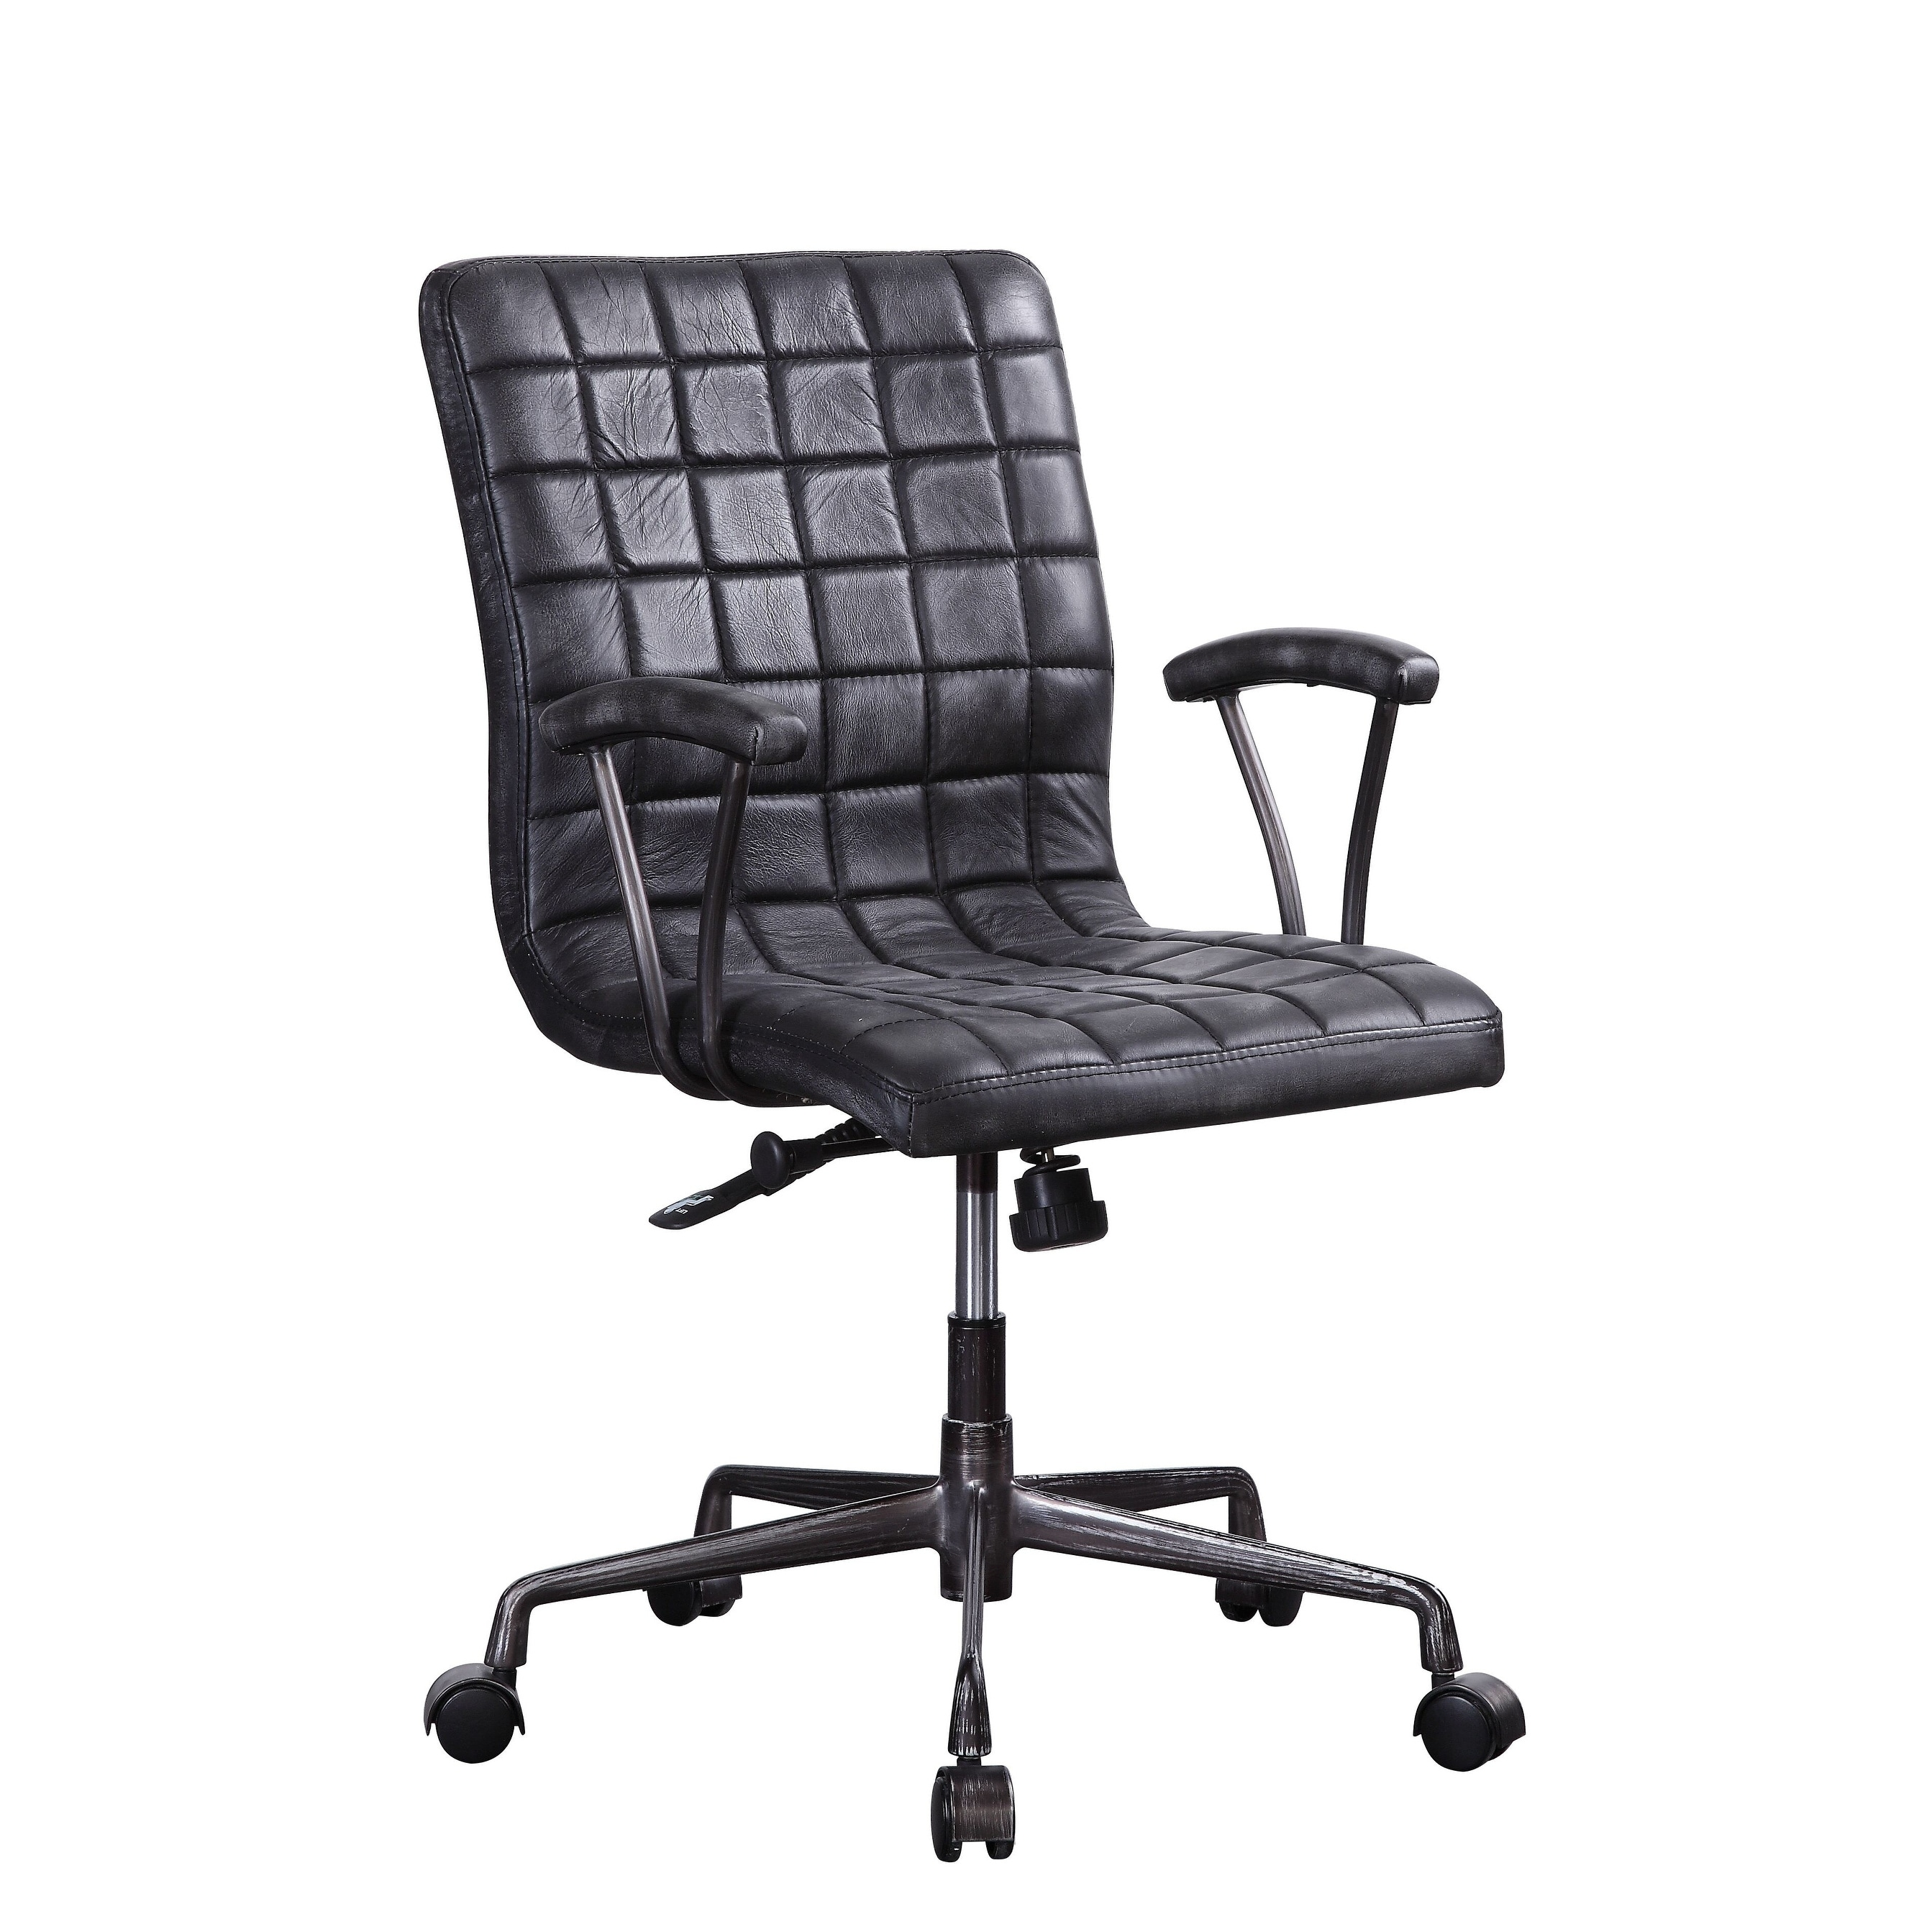 Barack Executive Office Chair In Vintage Black Top Grain Leather And Aluminum On Sale Overstock 27798488